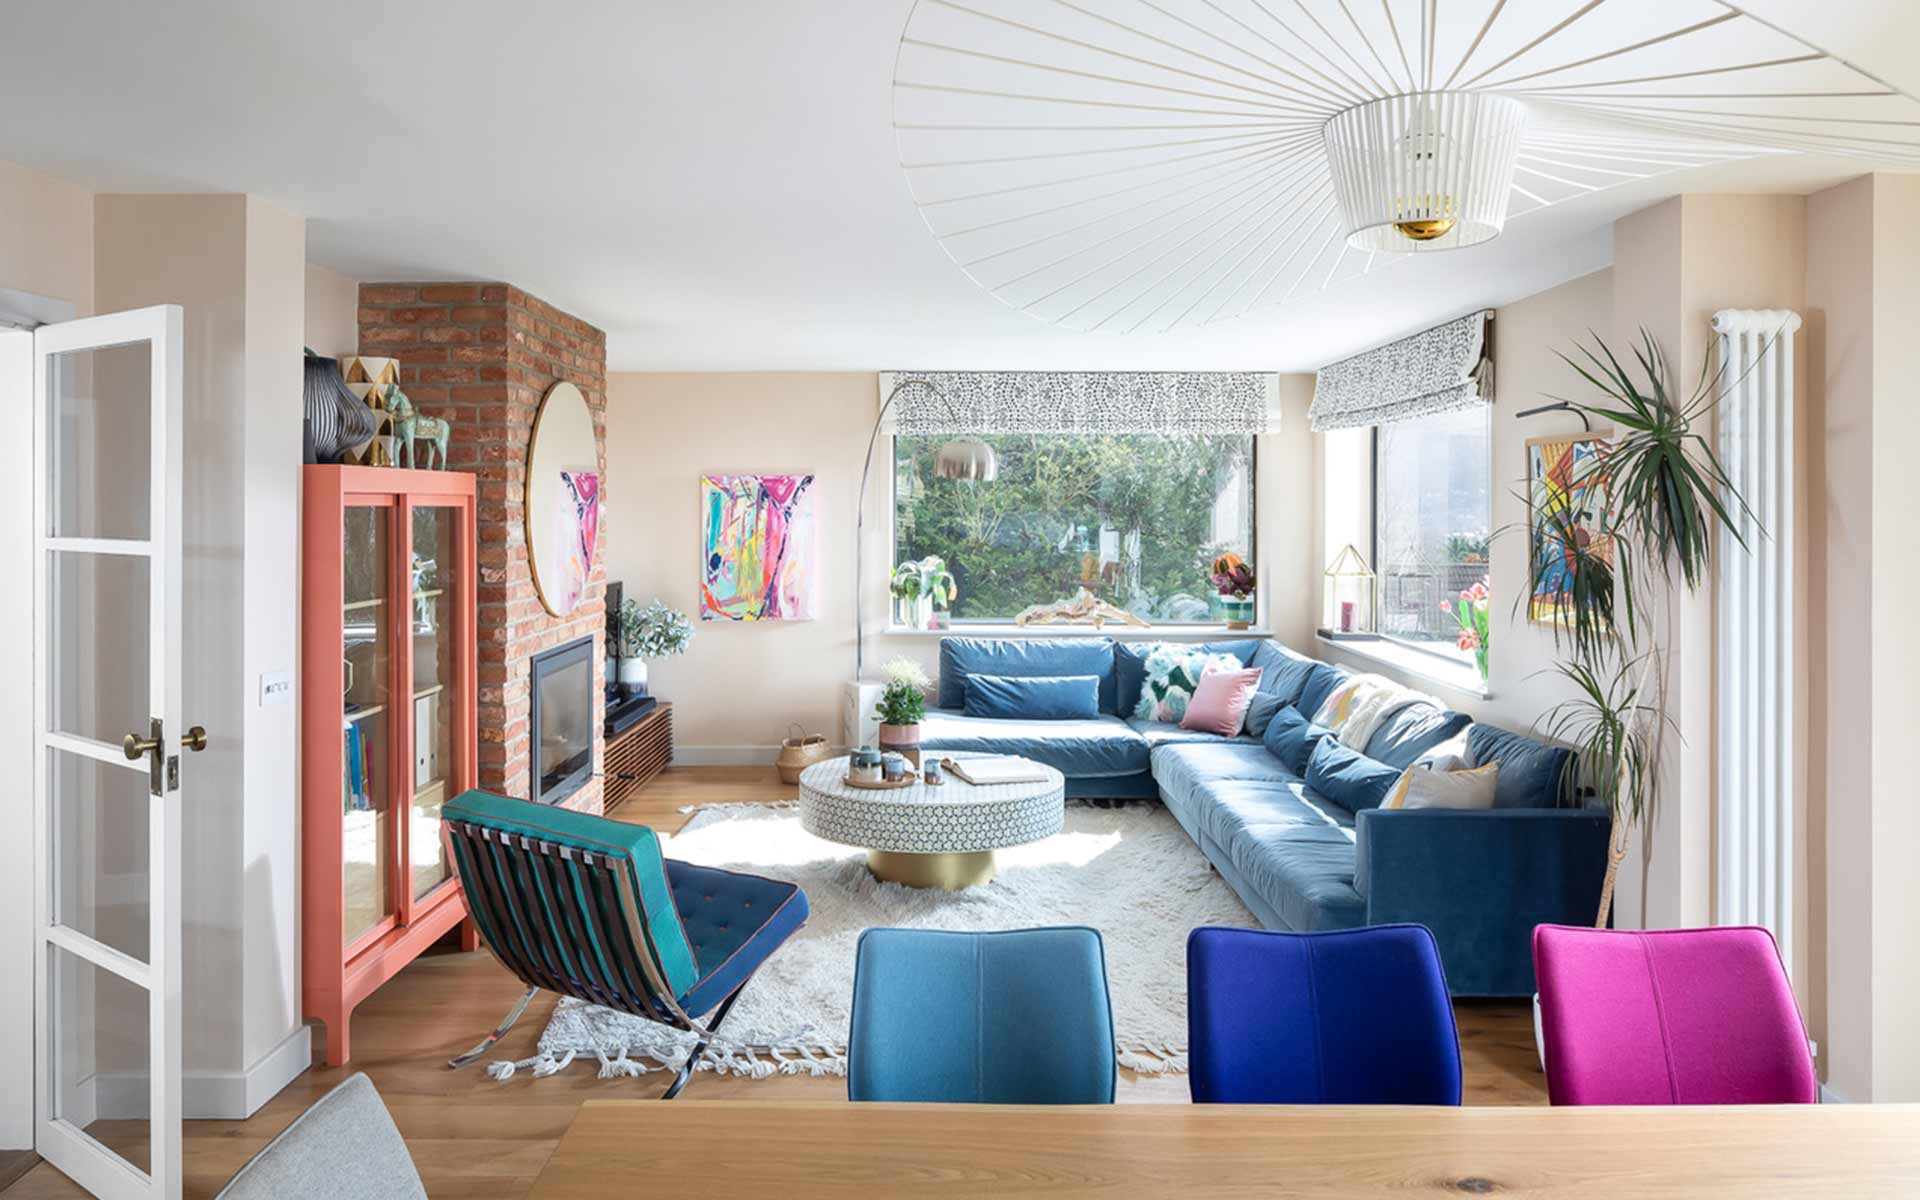 COLOUR IN THE HOME